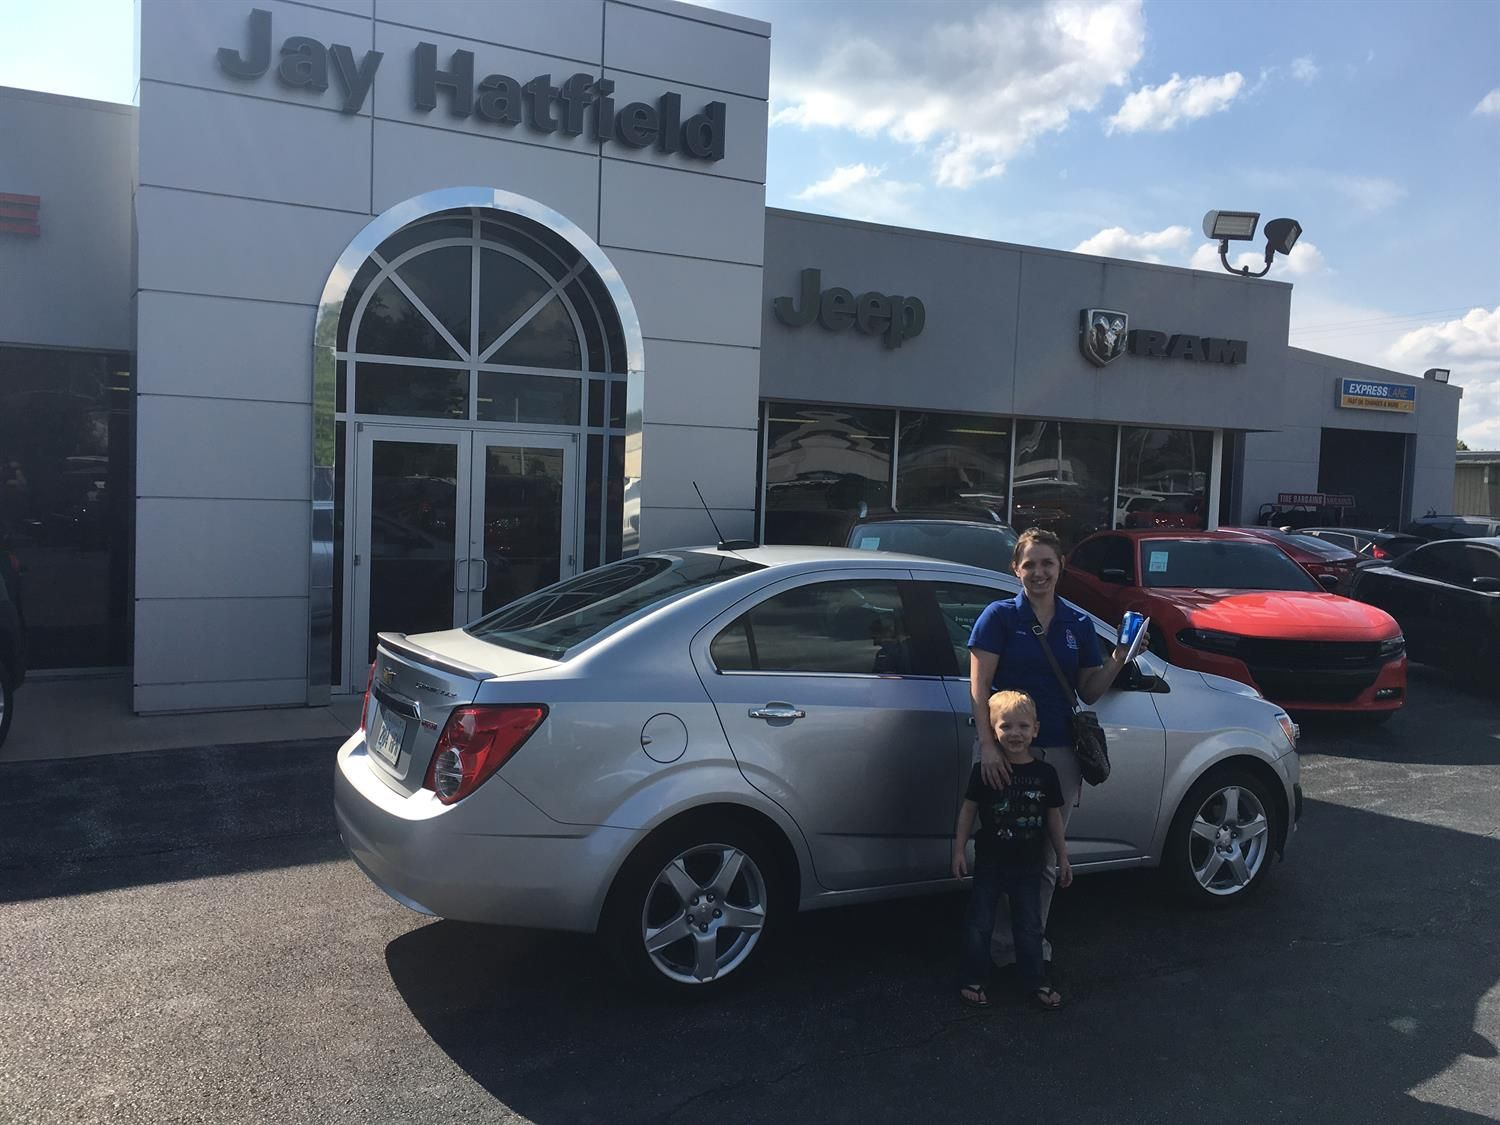 Sarah, we're so excited for all the places you'll go in your 2016 CHEVROLET SONIC!  Safe travels and best wishes on behalf of Jay Hatfield CDJR and AMANDA TIDWELL.